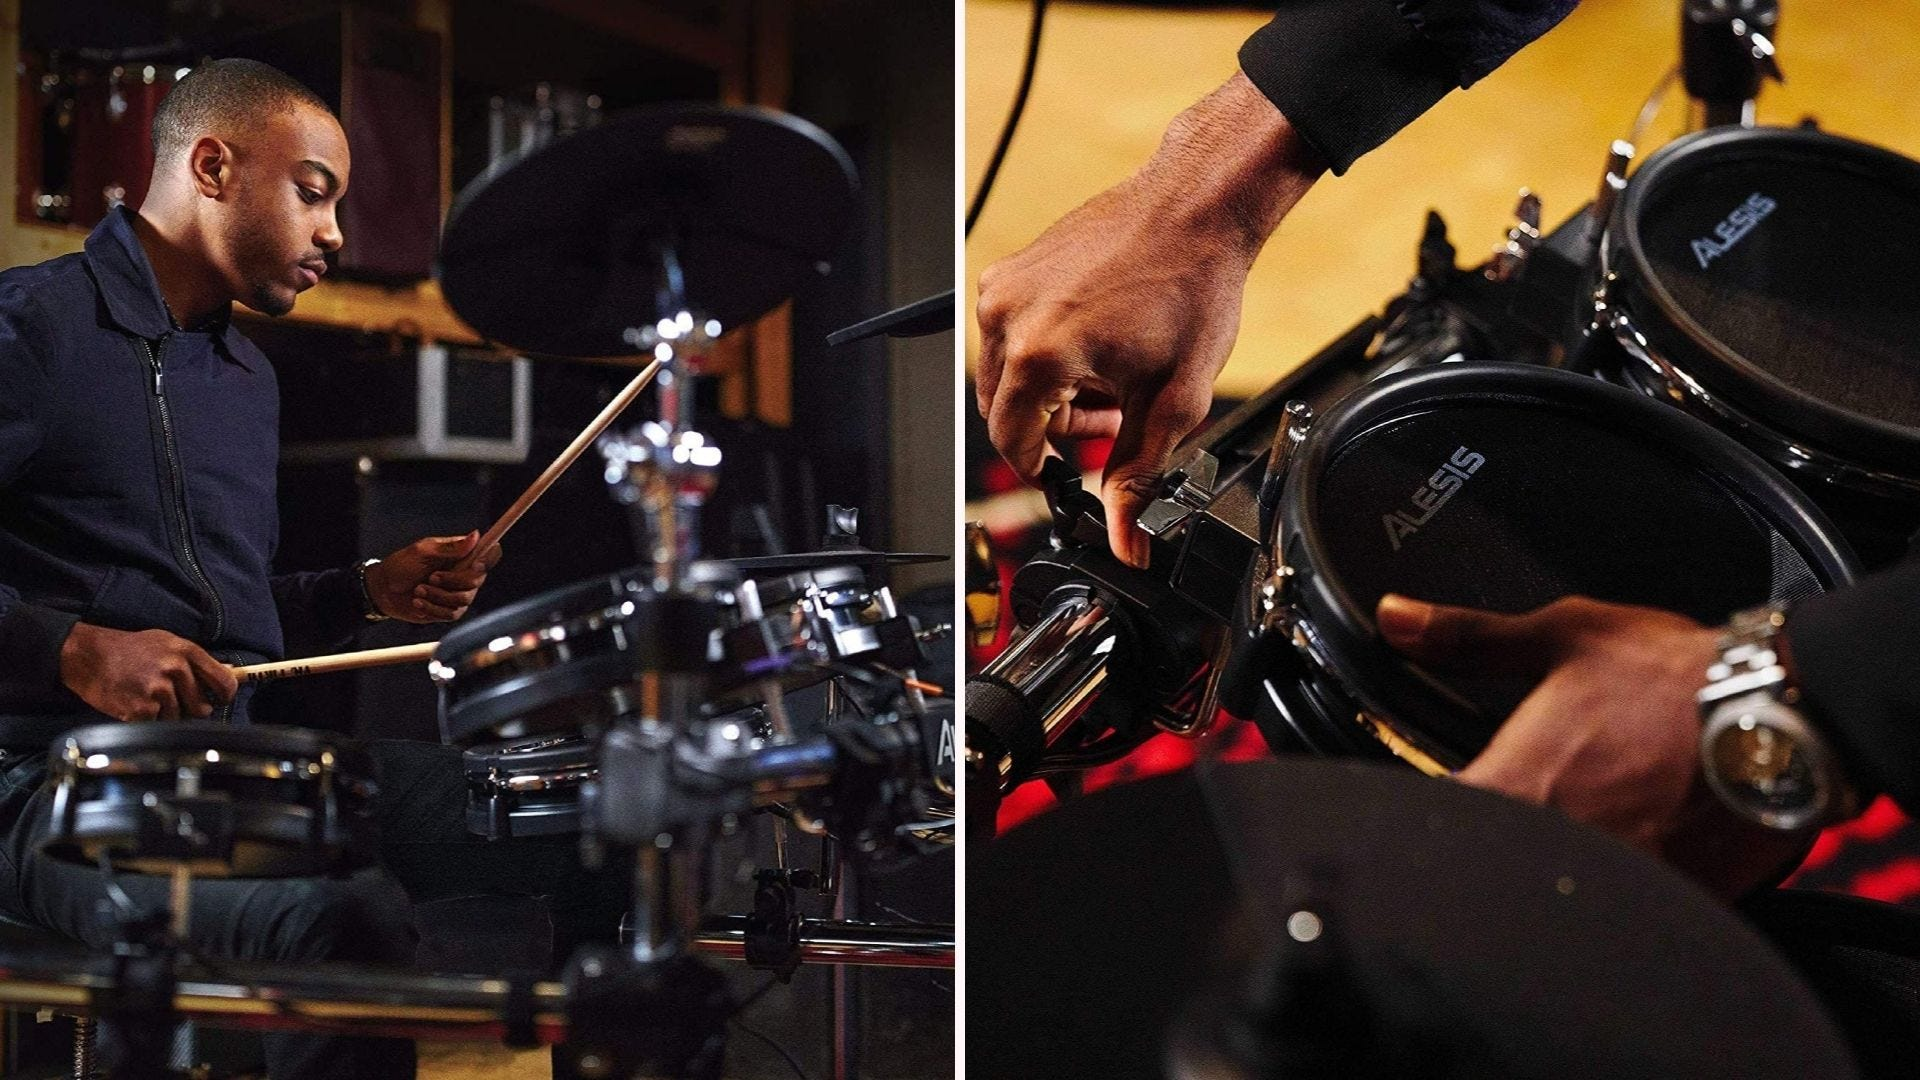 On the left, a male drummer plays on an electronic drum set. On the right, a close-up of a drummer adjusting a drum pad's position.